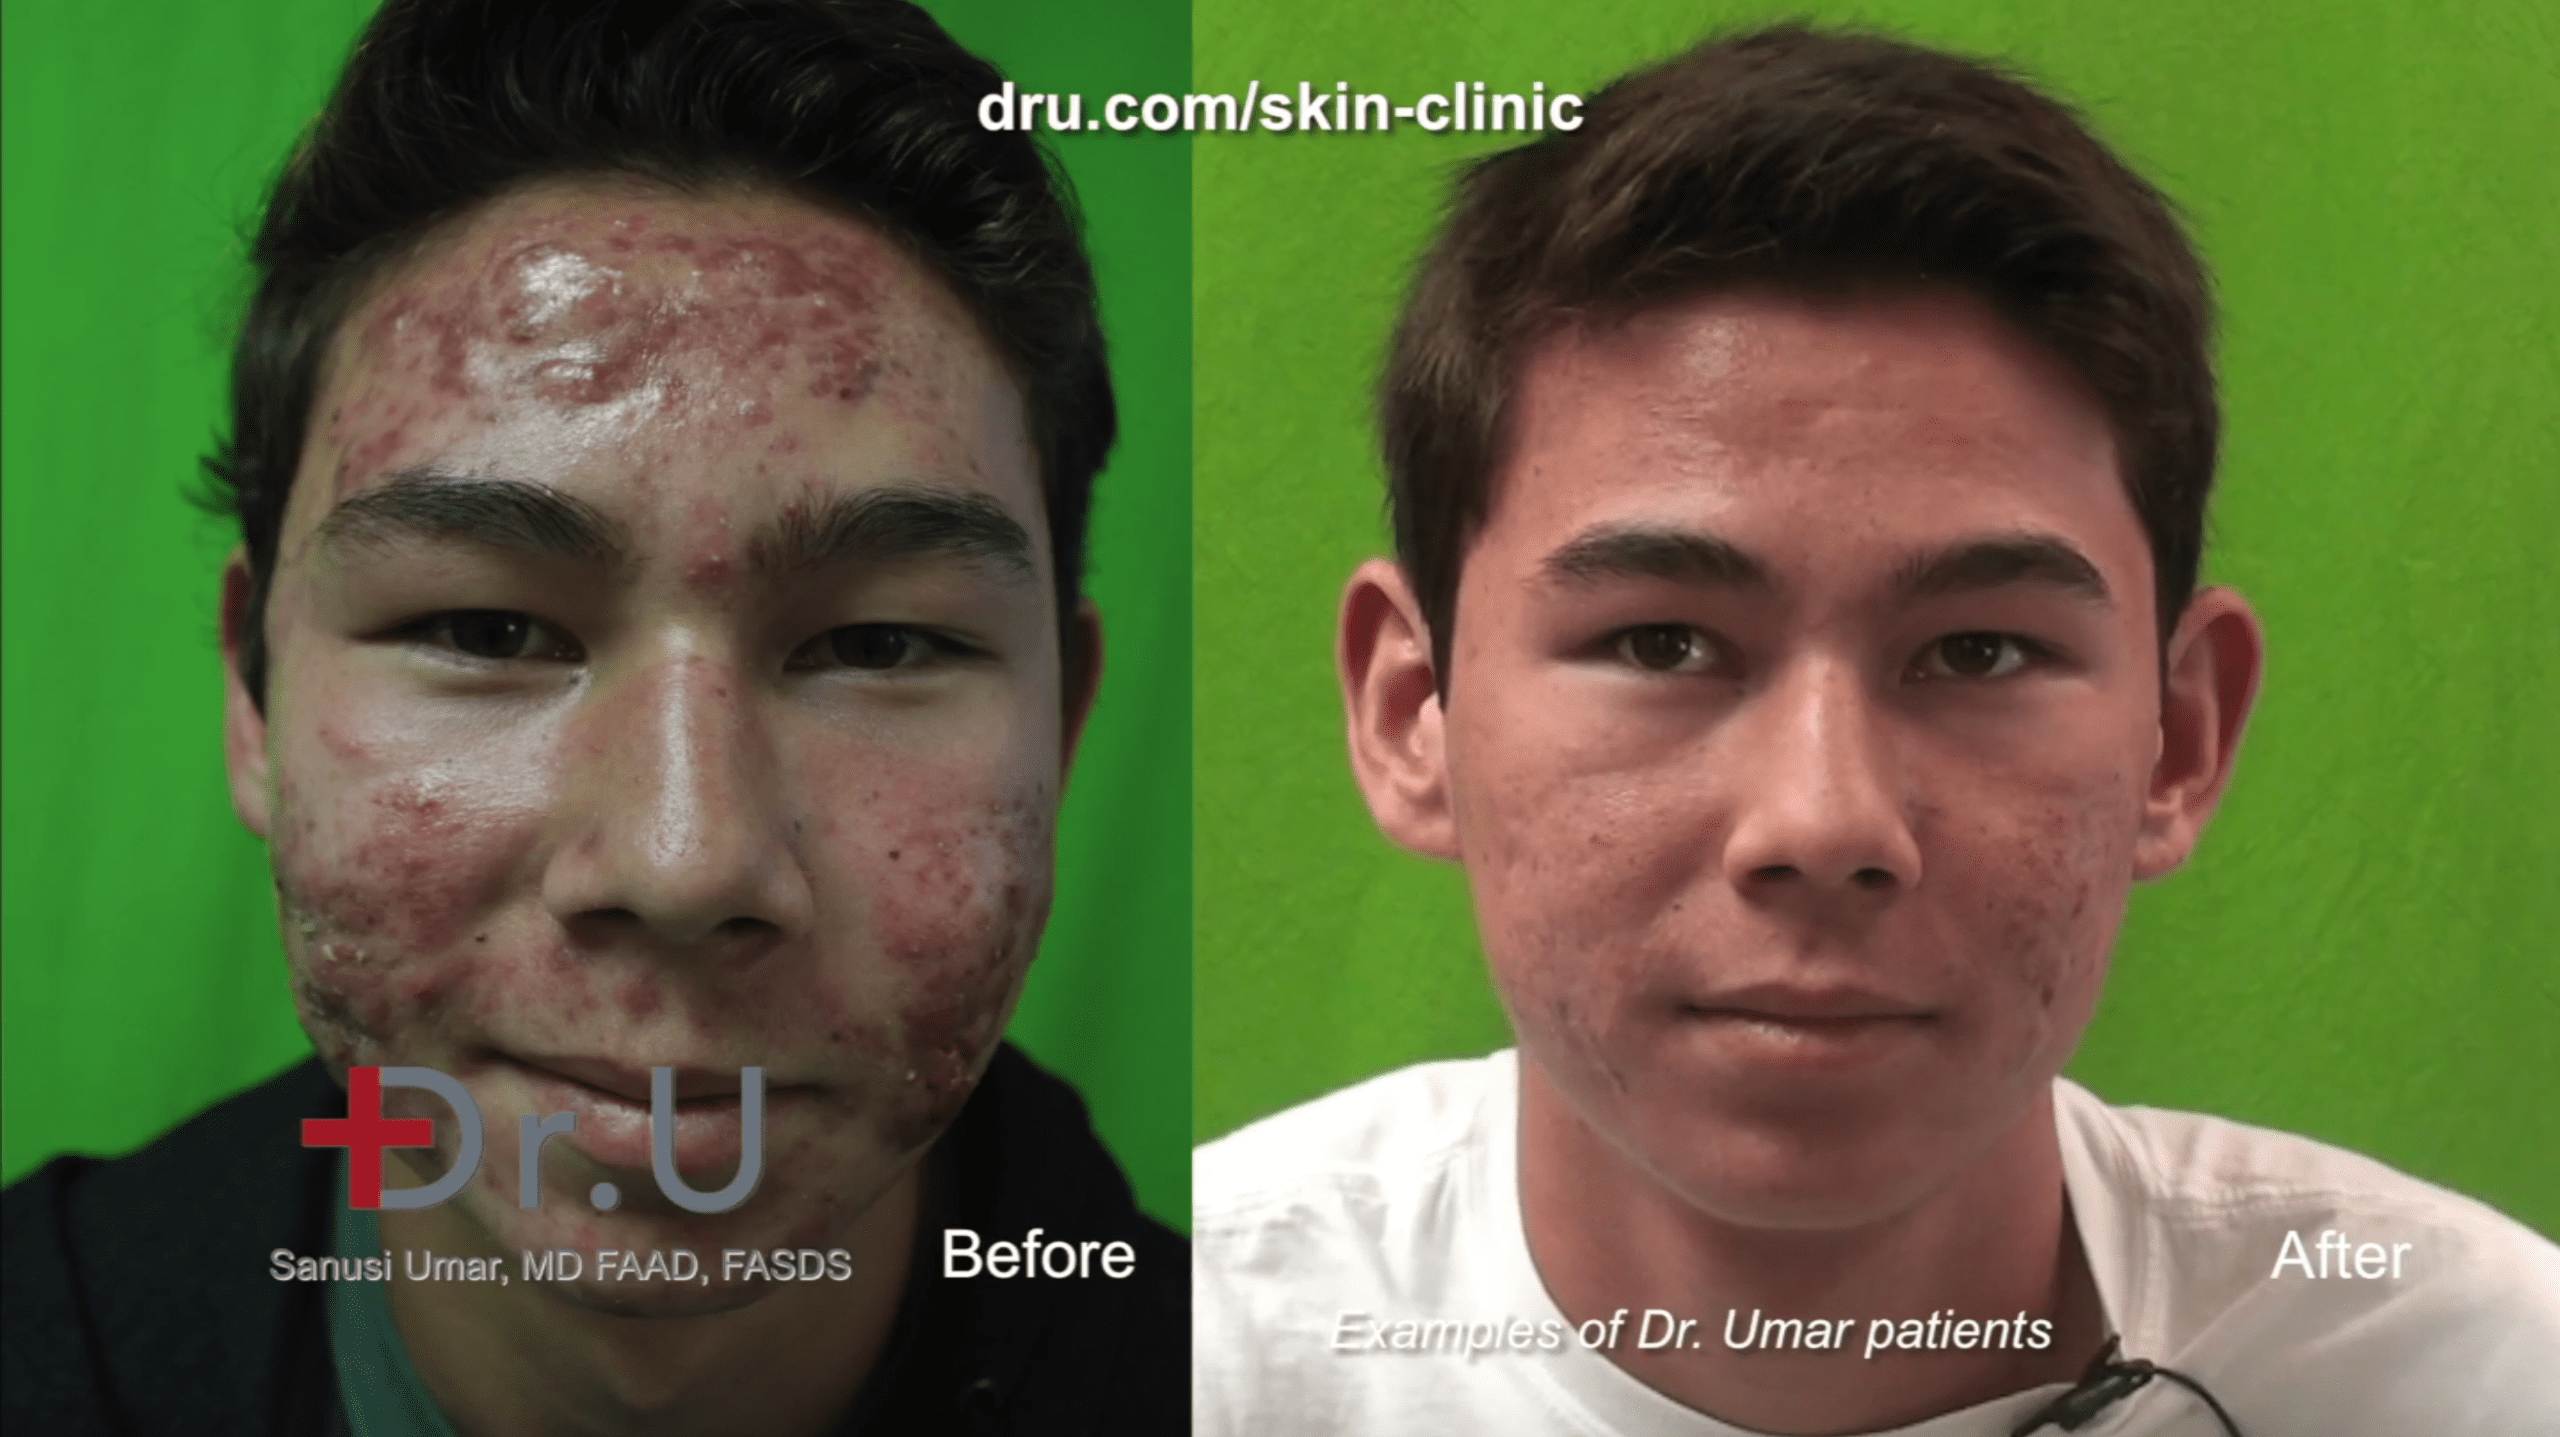 This minor patient's parents opted for severe acne laser treatment over Accutane. PDT laser therapy yielded excellent results.*